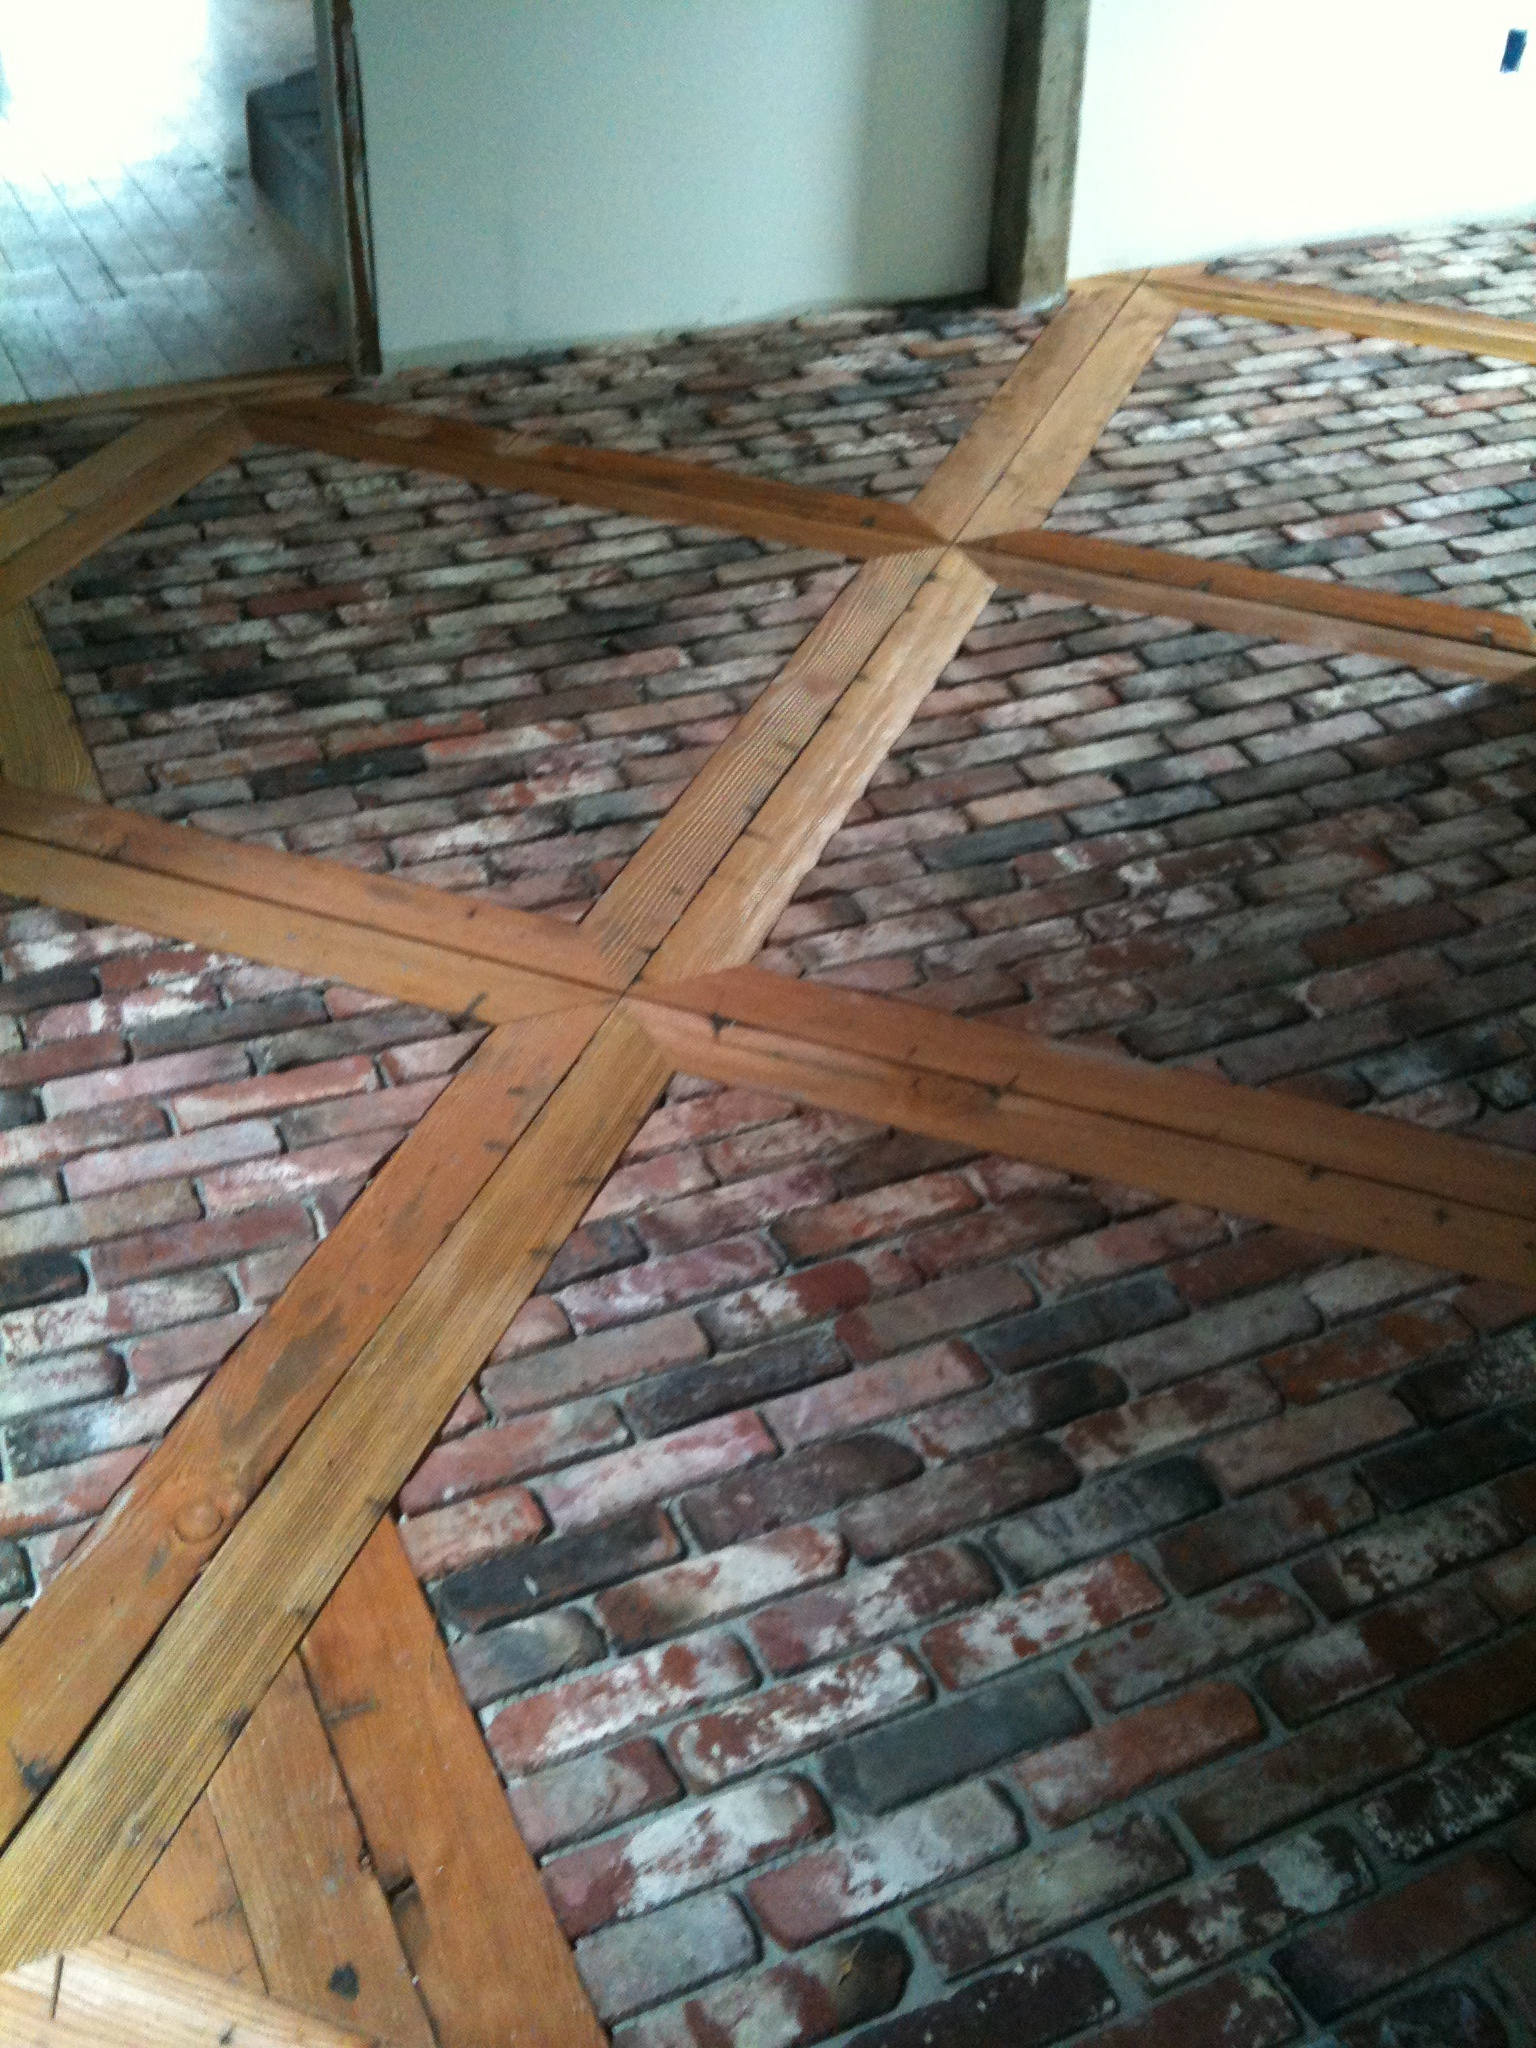 Brick Kitchen Floors Design600800 Brick Kitchen Floors Kitchens Inglenook Brick